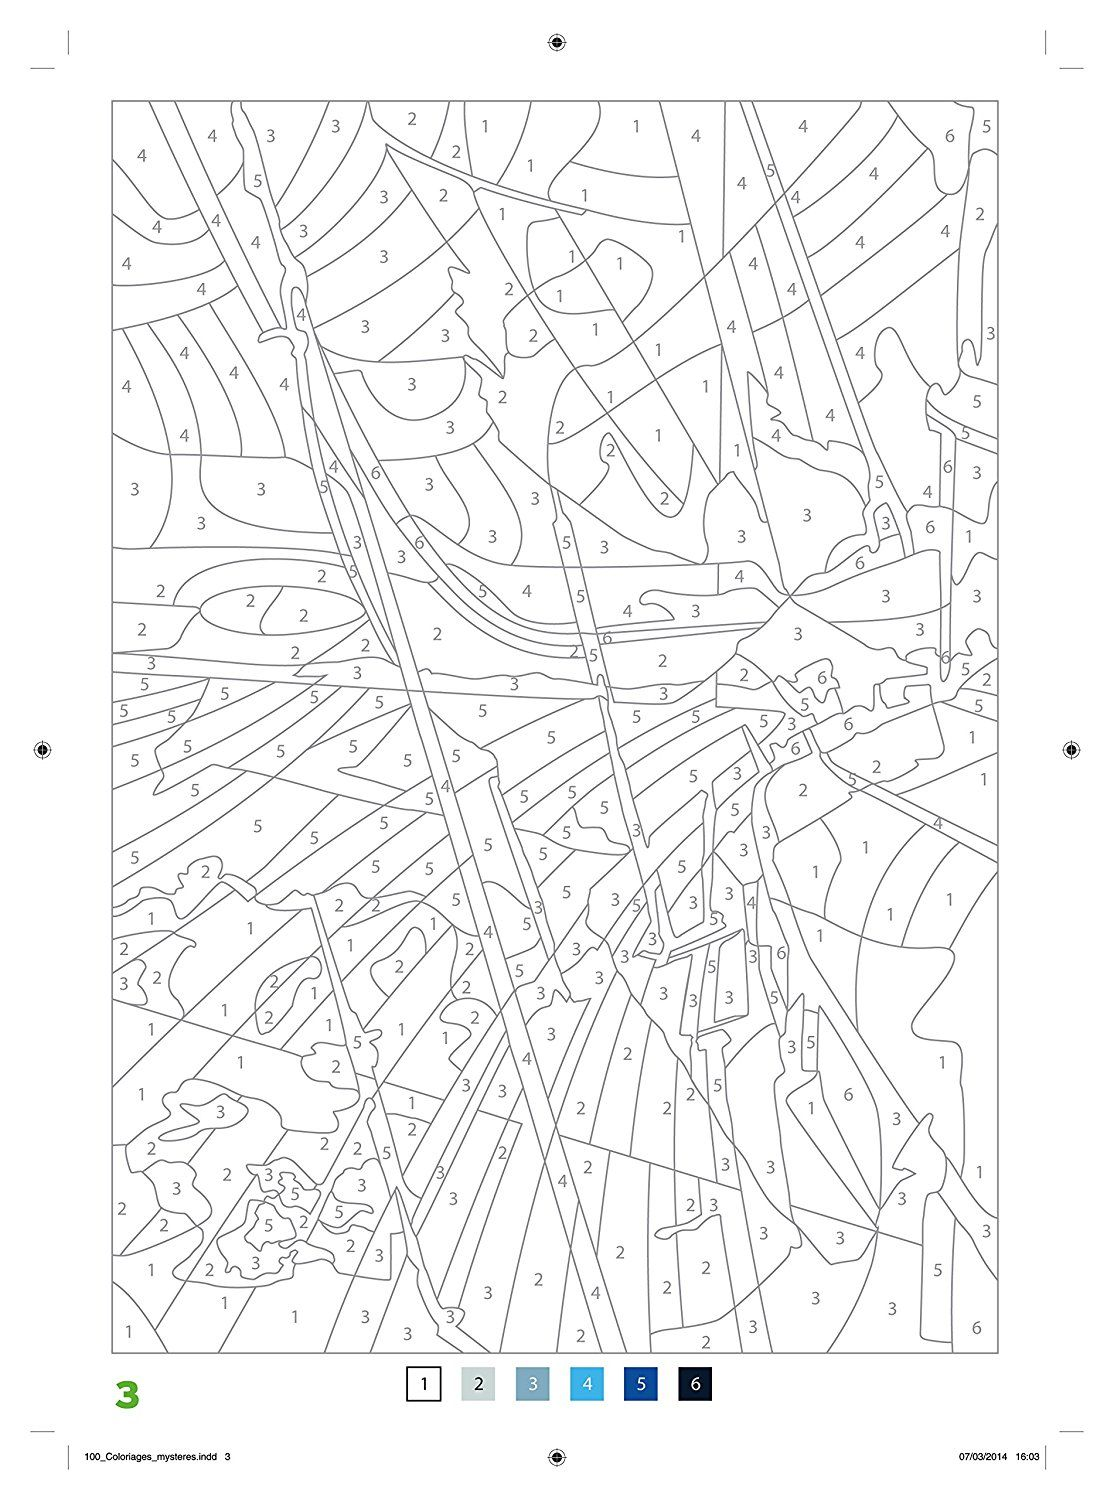 100 Coloriages Mysteres Art Therapie